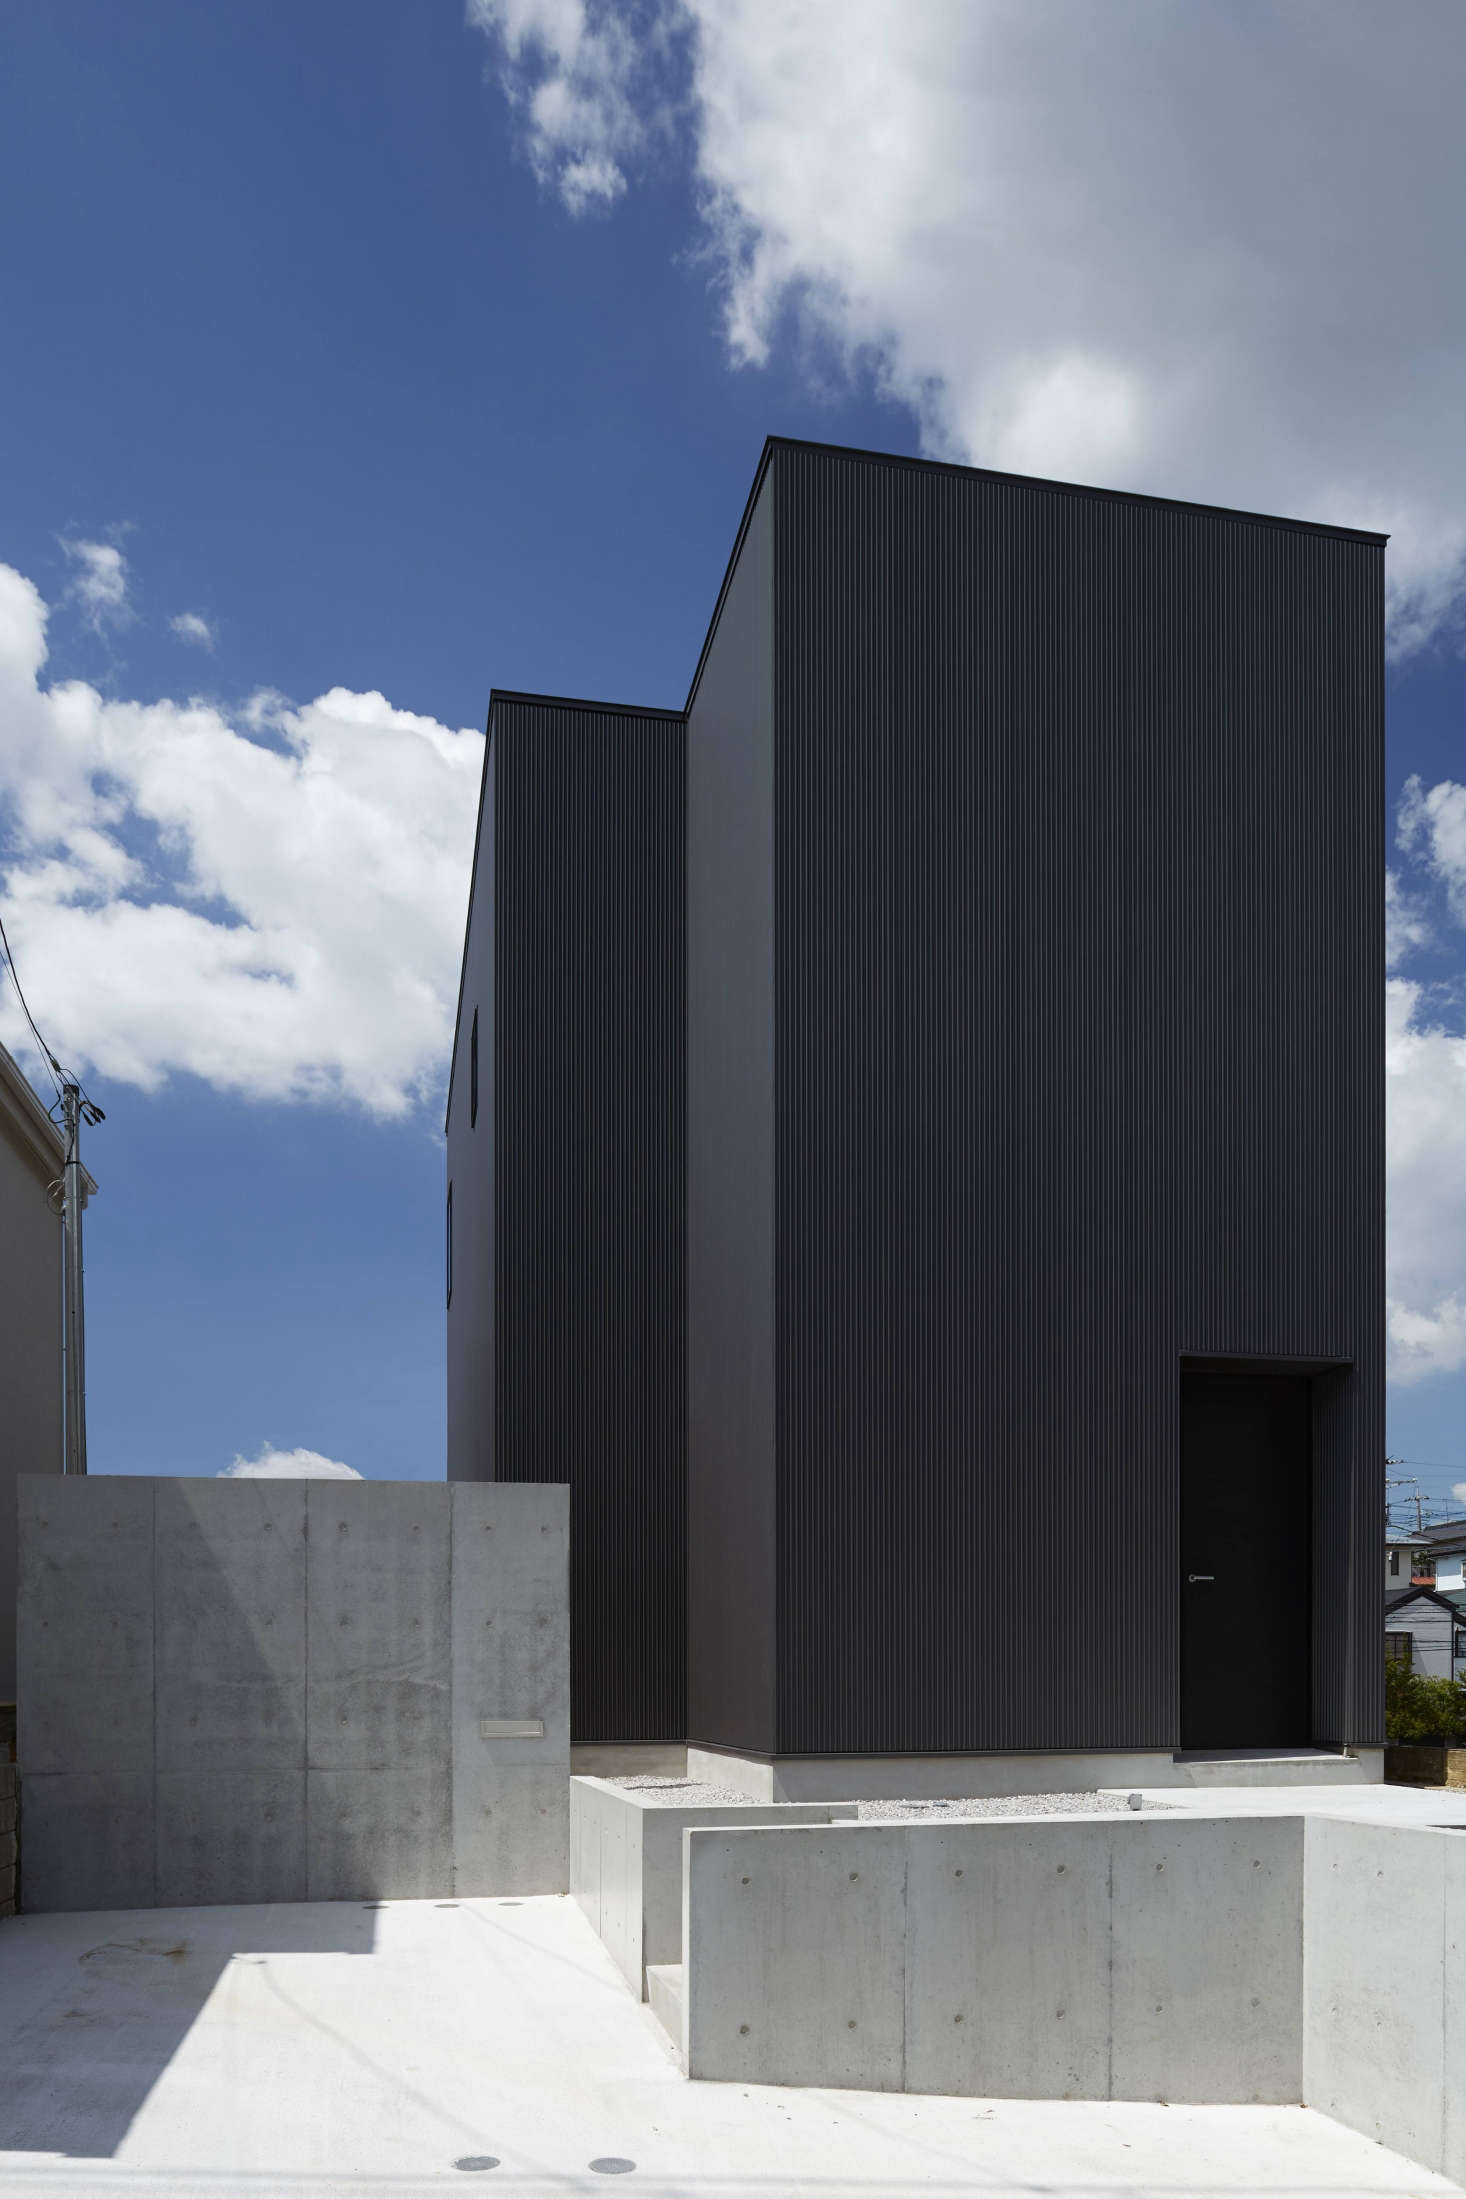 Dubbed the Black House, the two-story structure is clad in an industrial corrugated metal paneling known as galvanium,selected, say the designers, &#8